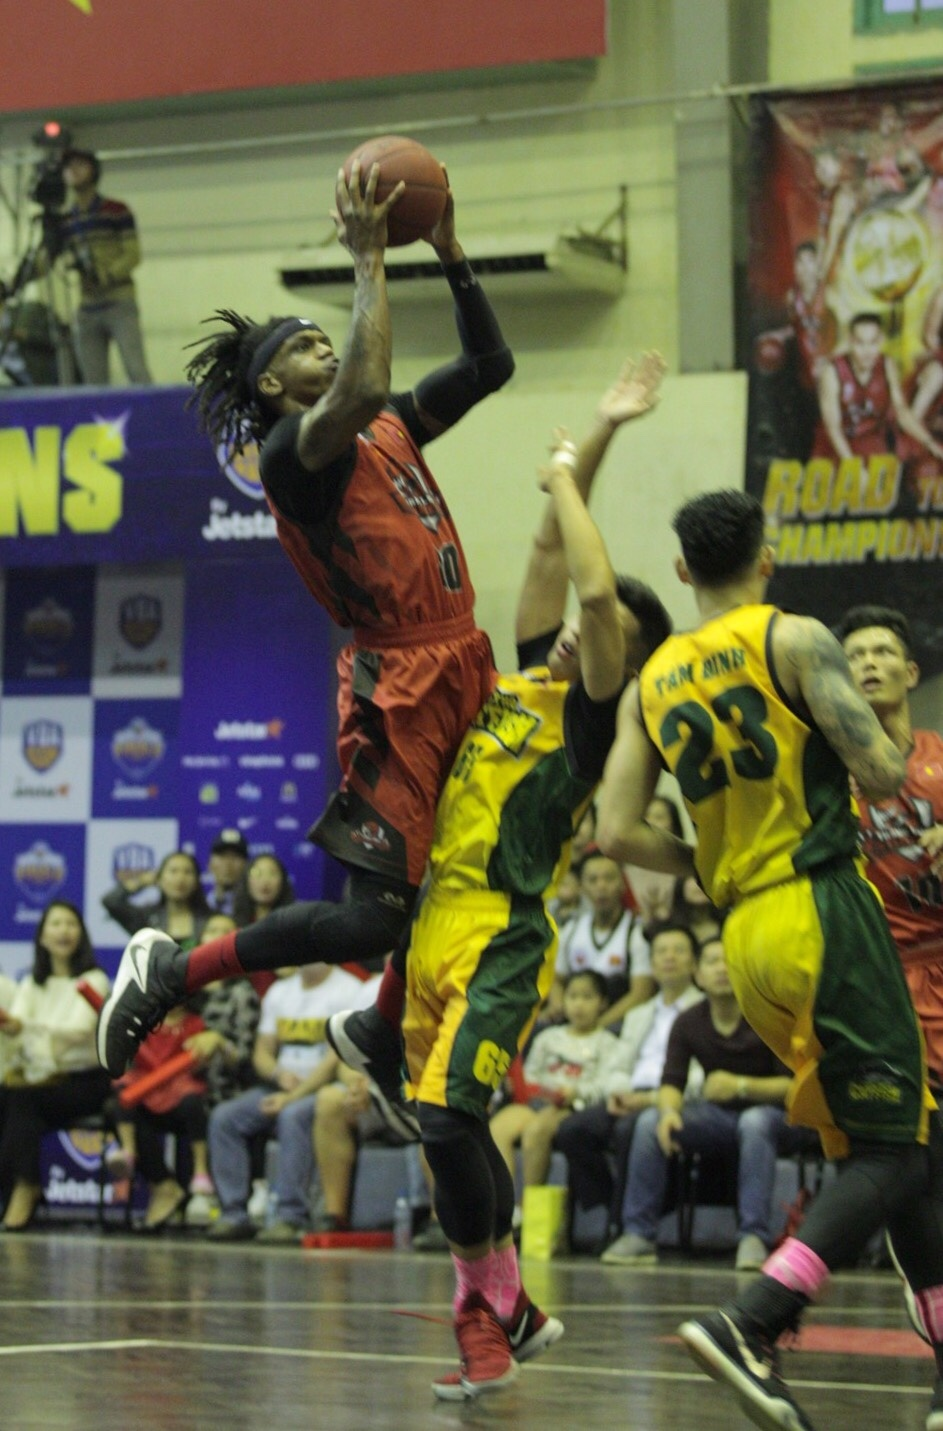 Thanglong Warriors vs Cantho Catfish anh 19